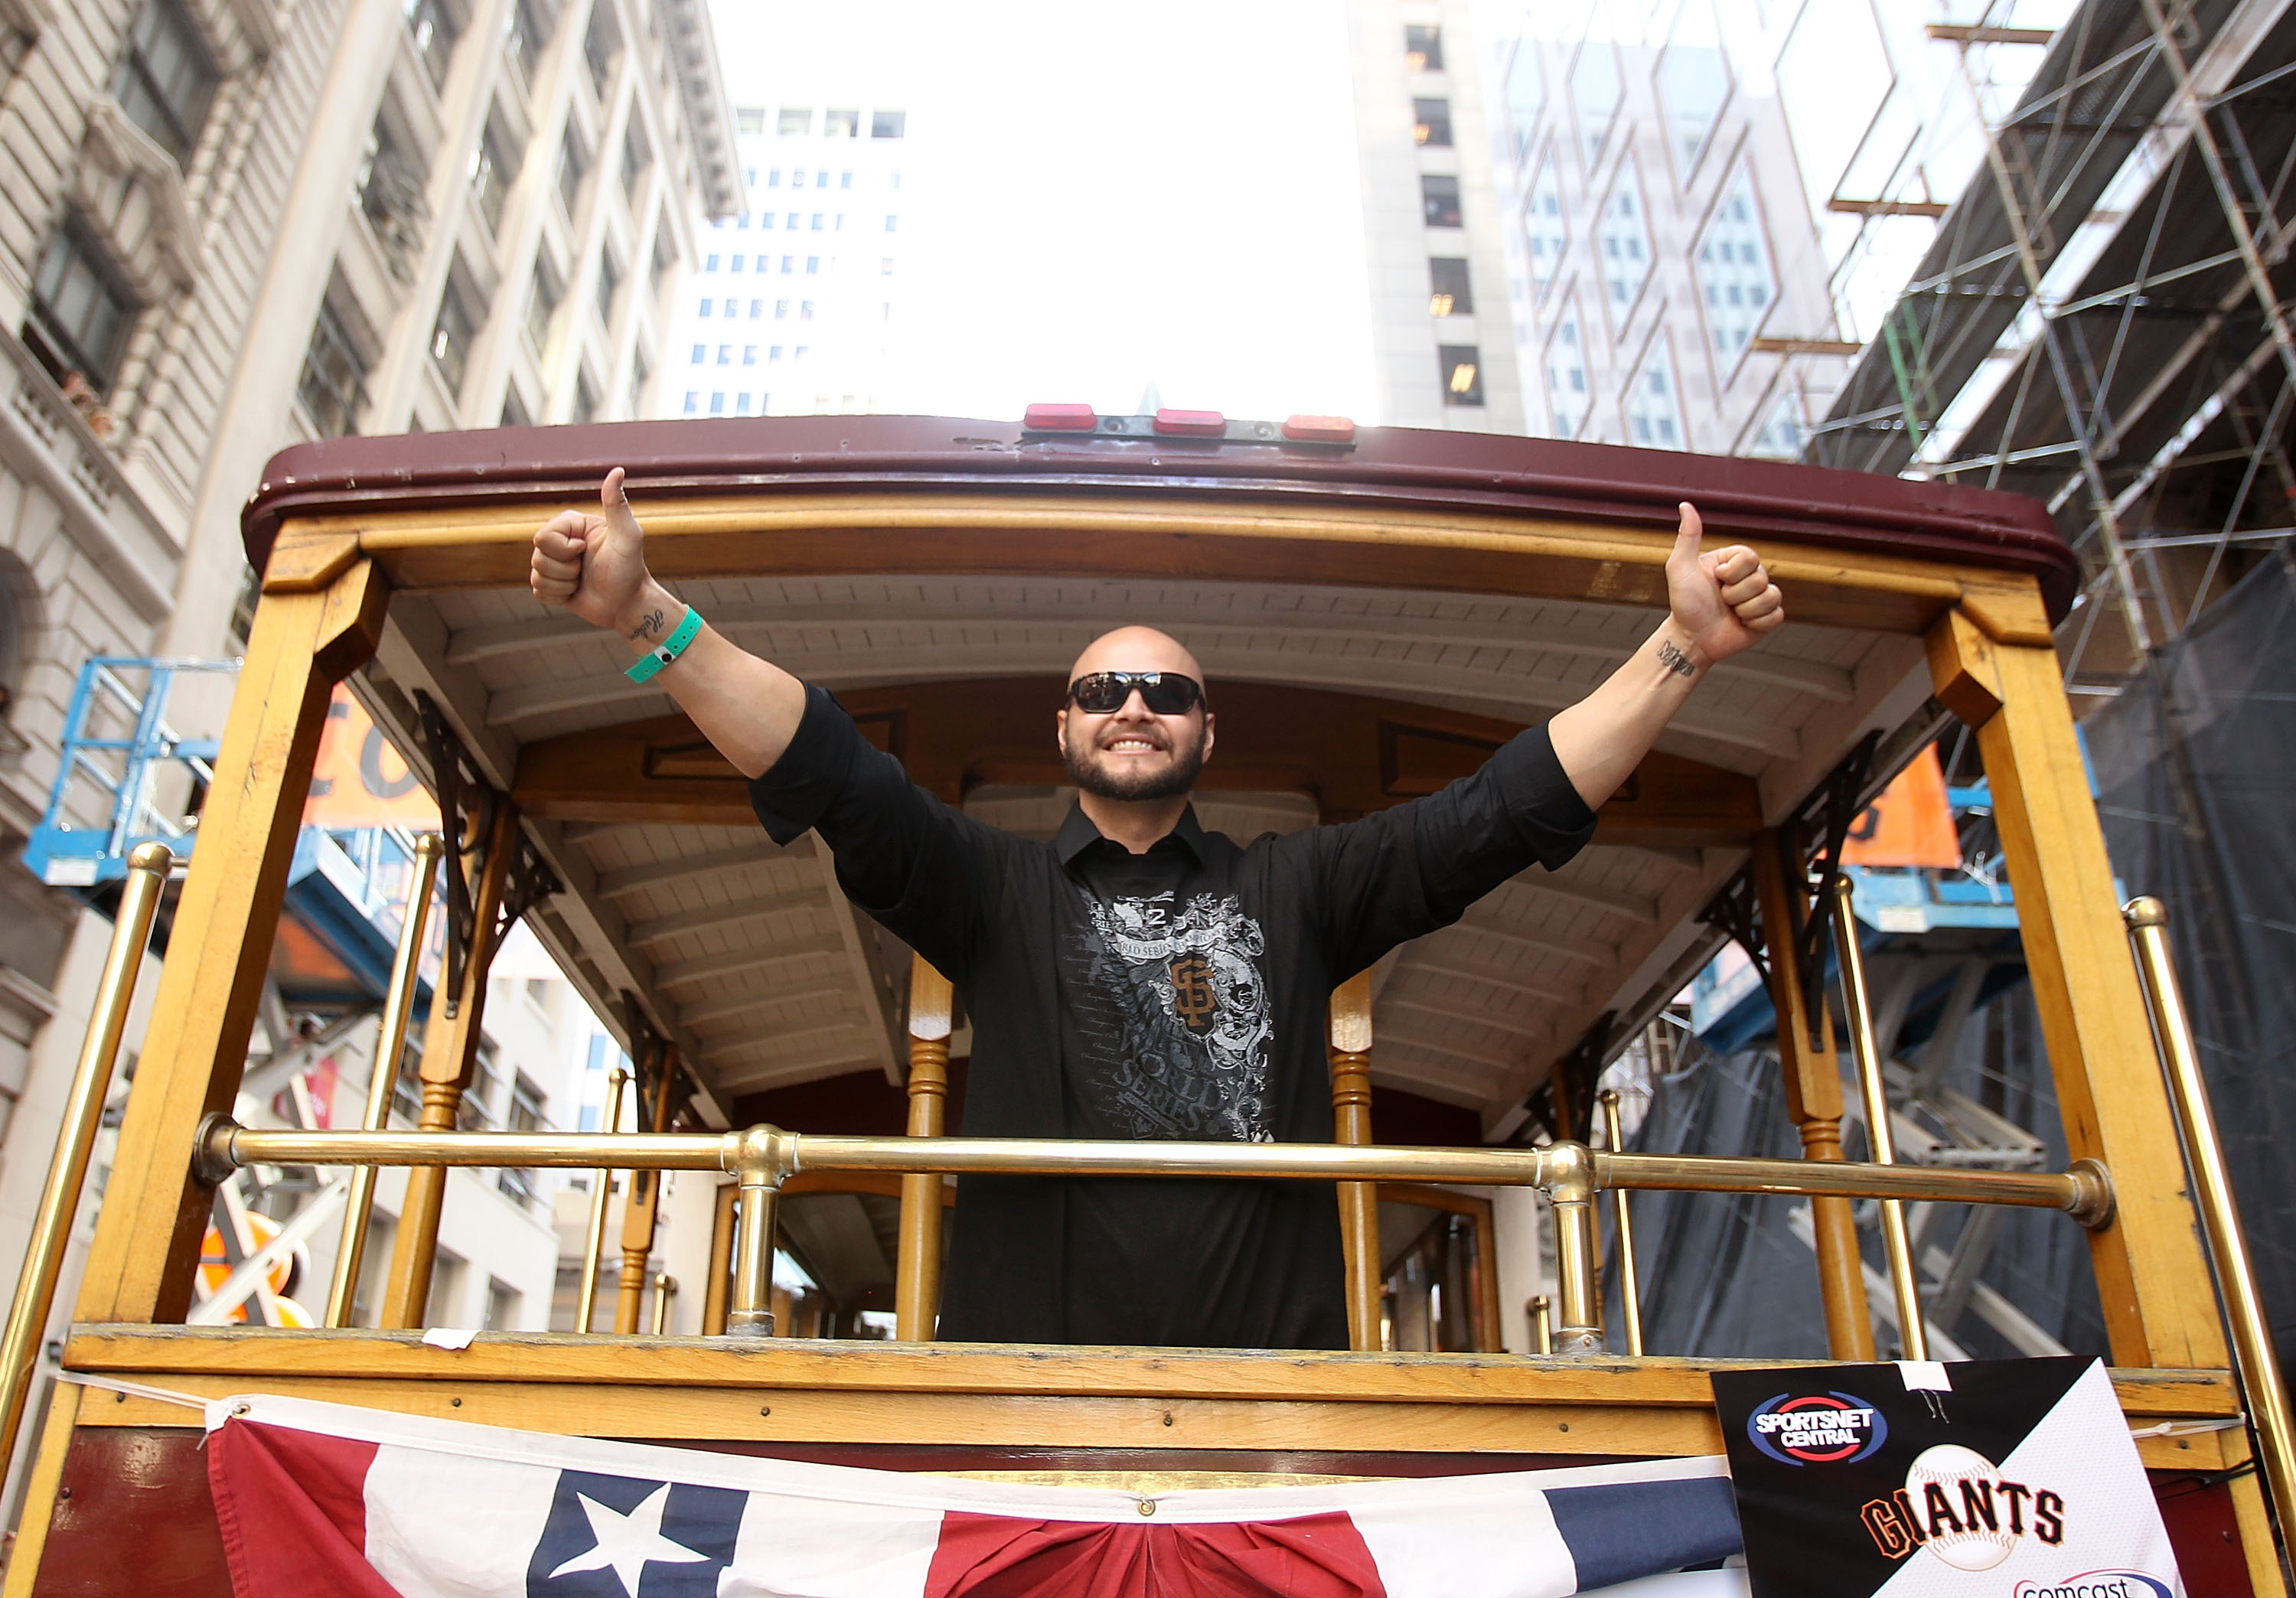 SAN FRANCISCO - NOVEMBER 03:  Cody Ross of the San Francisco Giants waves to the crowd during the San Francisco Giants victory parade on November 3, 2010 in San Francisco, California.  (Photo by Ezra Shaw/Getty Images)